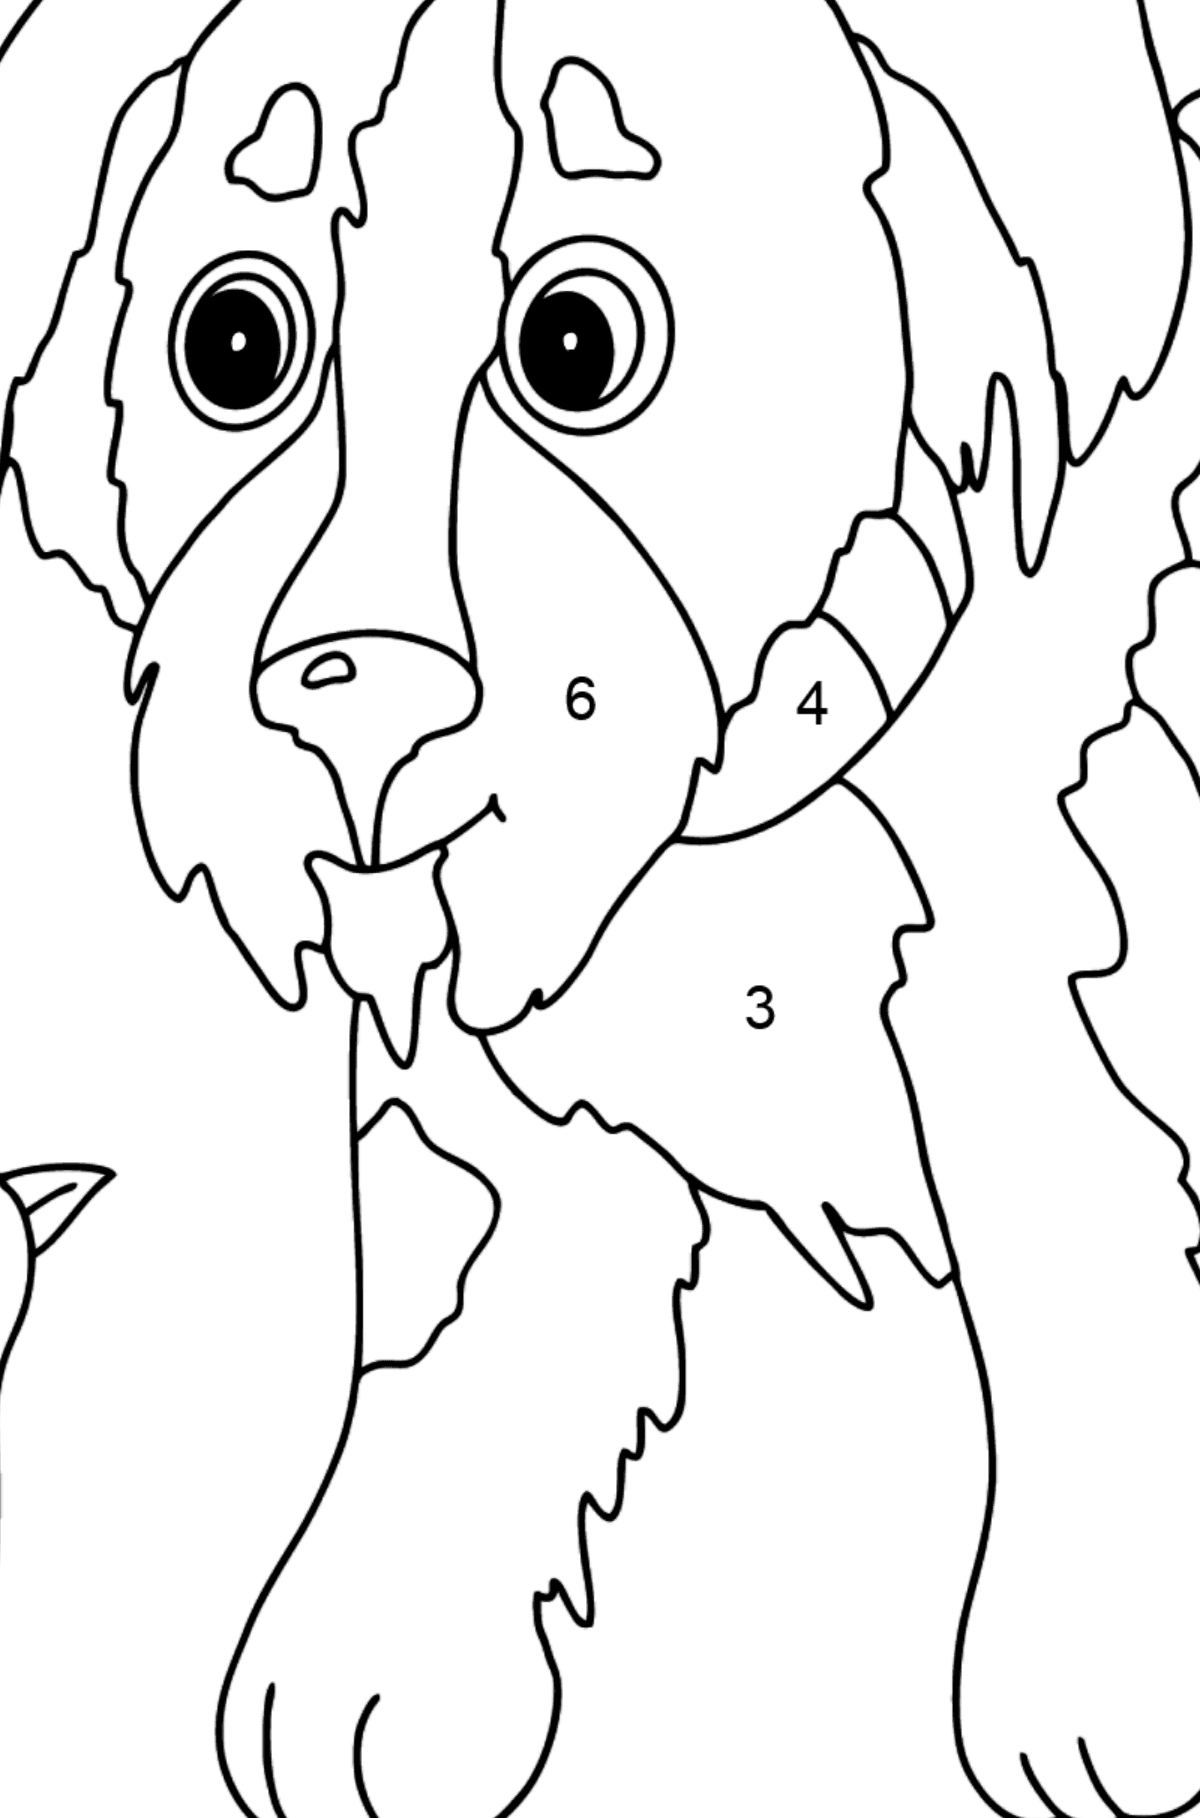 Coloring Page - A Dog is Talking to a Bird - Coloring by Numbers for Kids